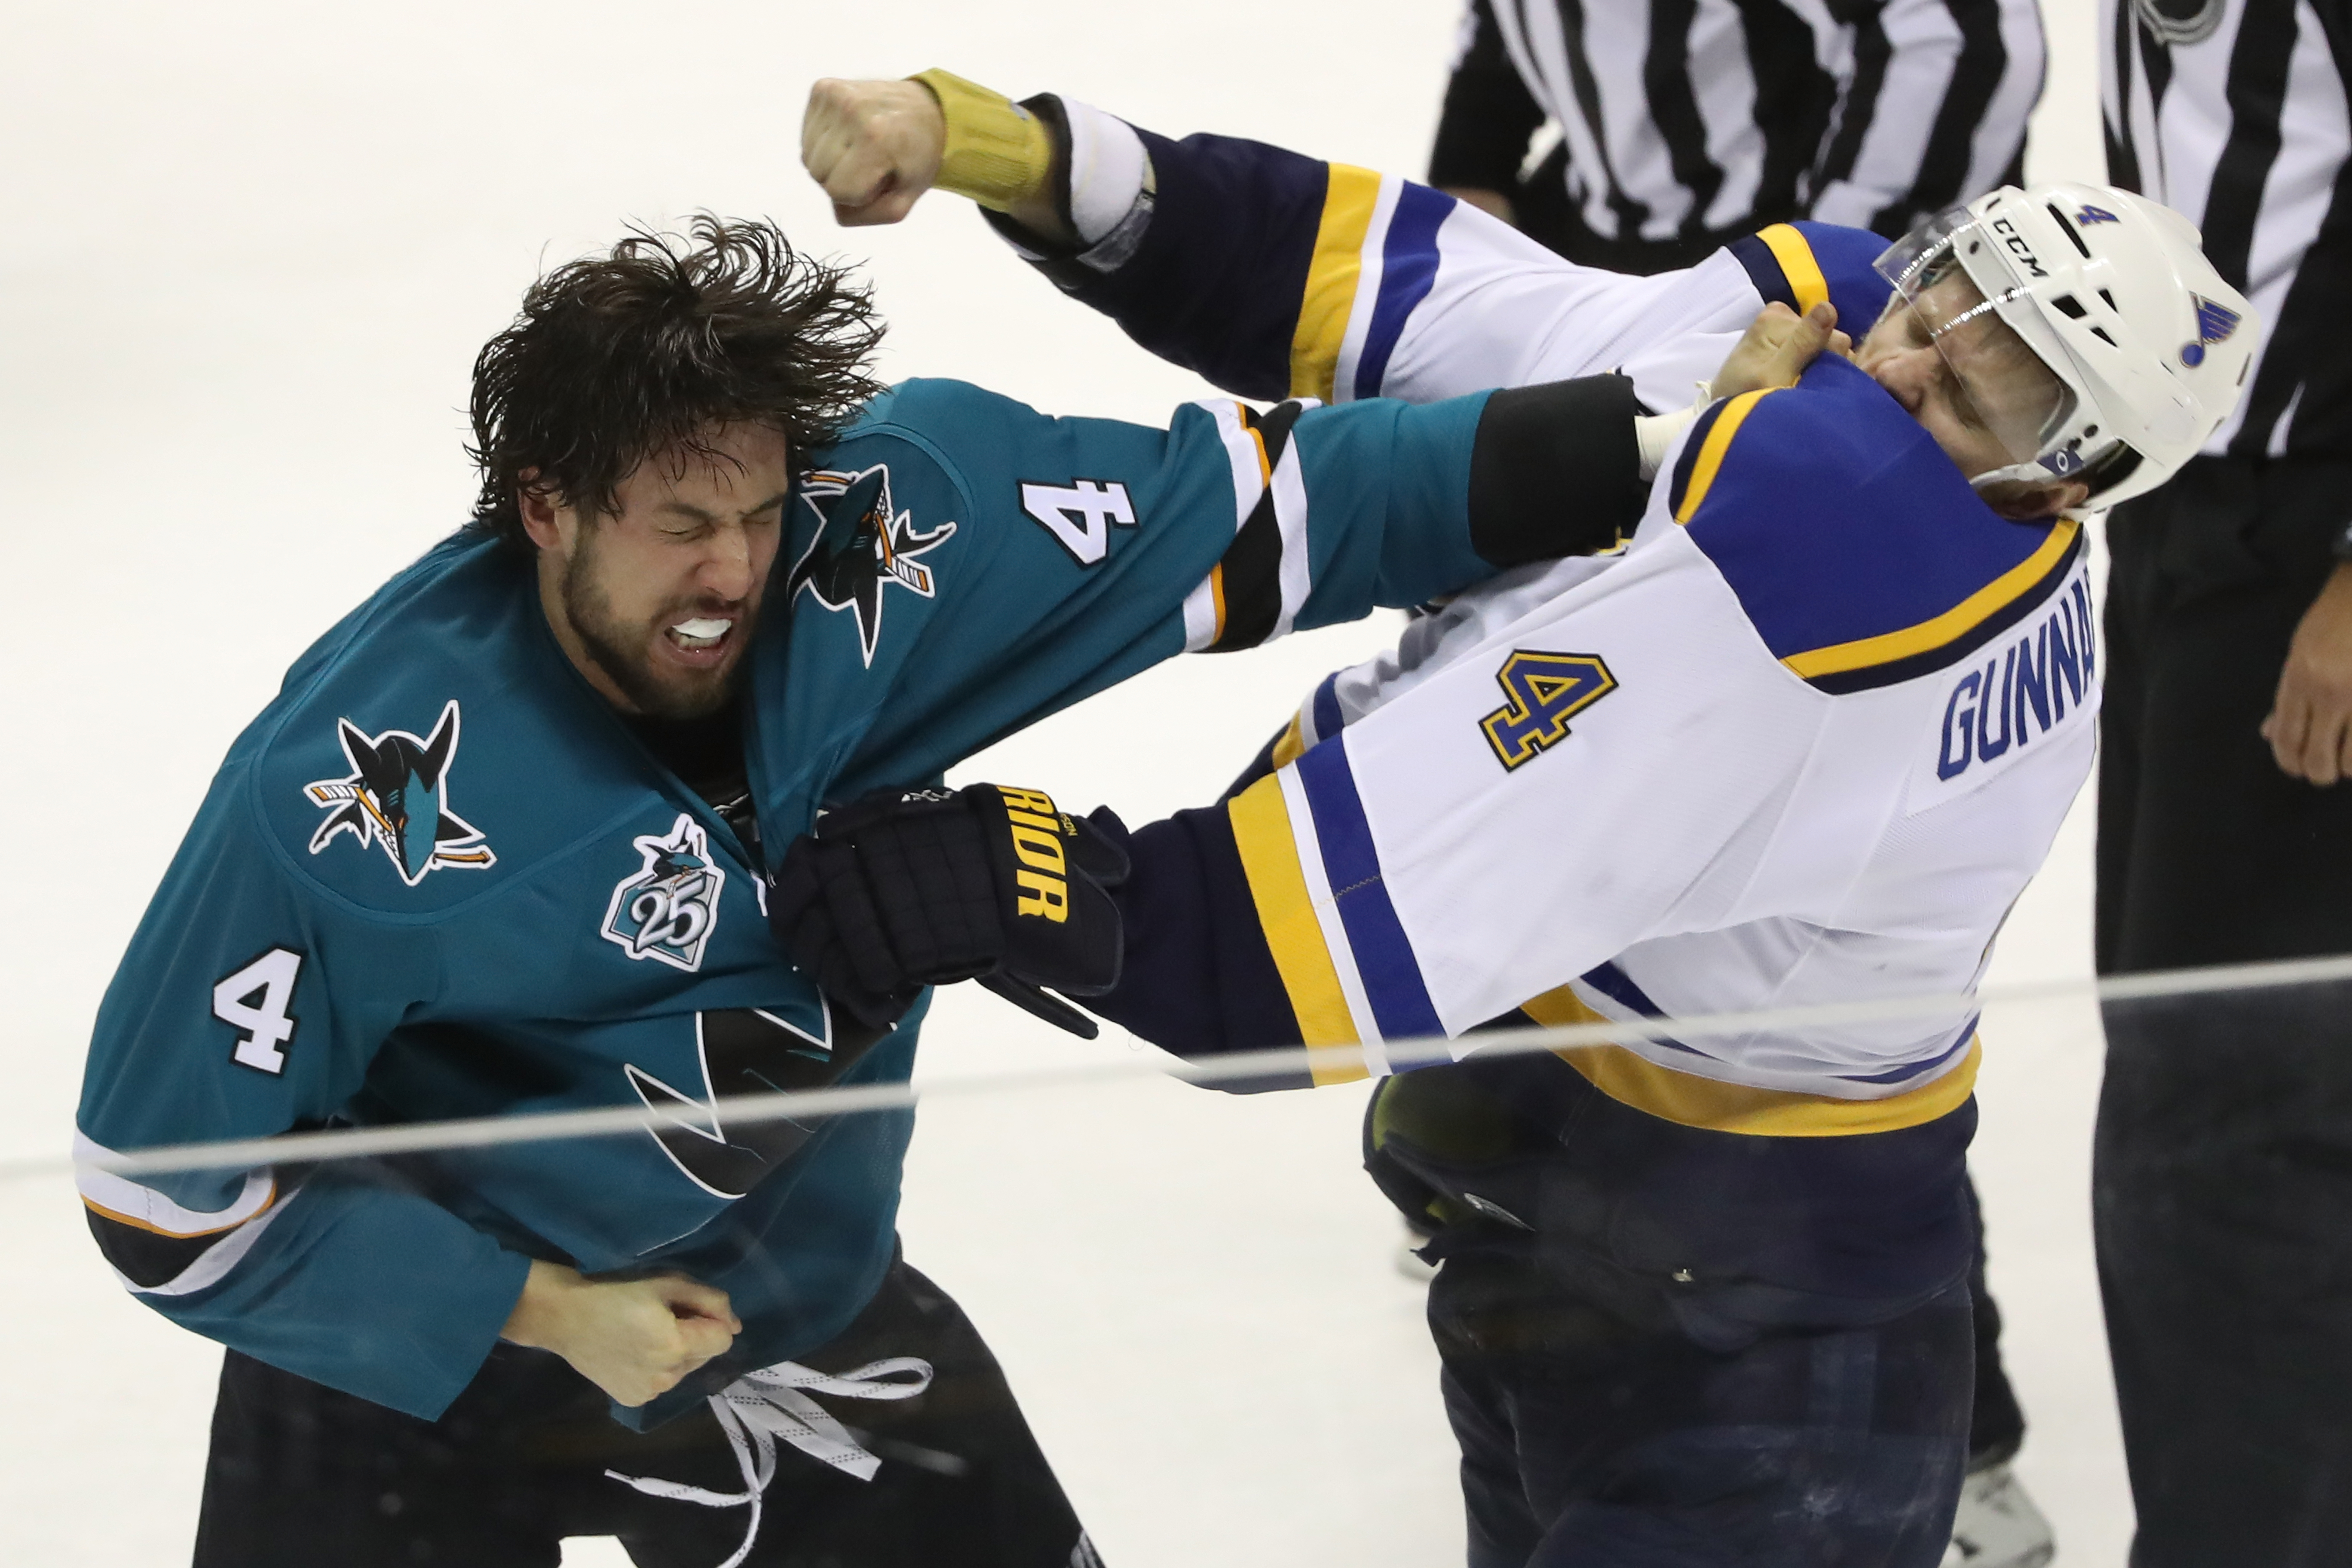 SAN JOSE, CA - MAY 21:  Brenden Dillon #4 of the San Jose Sharks fights with Carl Gunnarsson #4 of the St. Louis Blues in game four of the Western Conference Finals during the 2016 NHL Stanley Cup Playoffs at SAP Center on May 21, 2016 in San Jose, California.  (Photo by Sean M. Haffey/Getty Images)